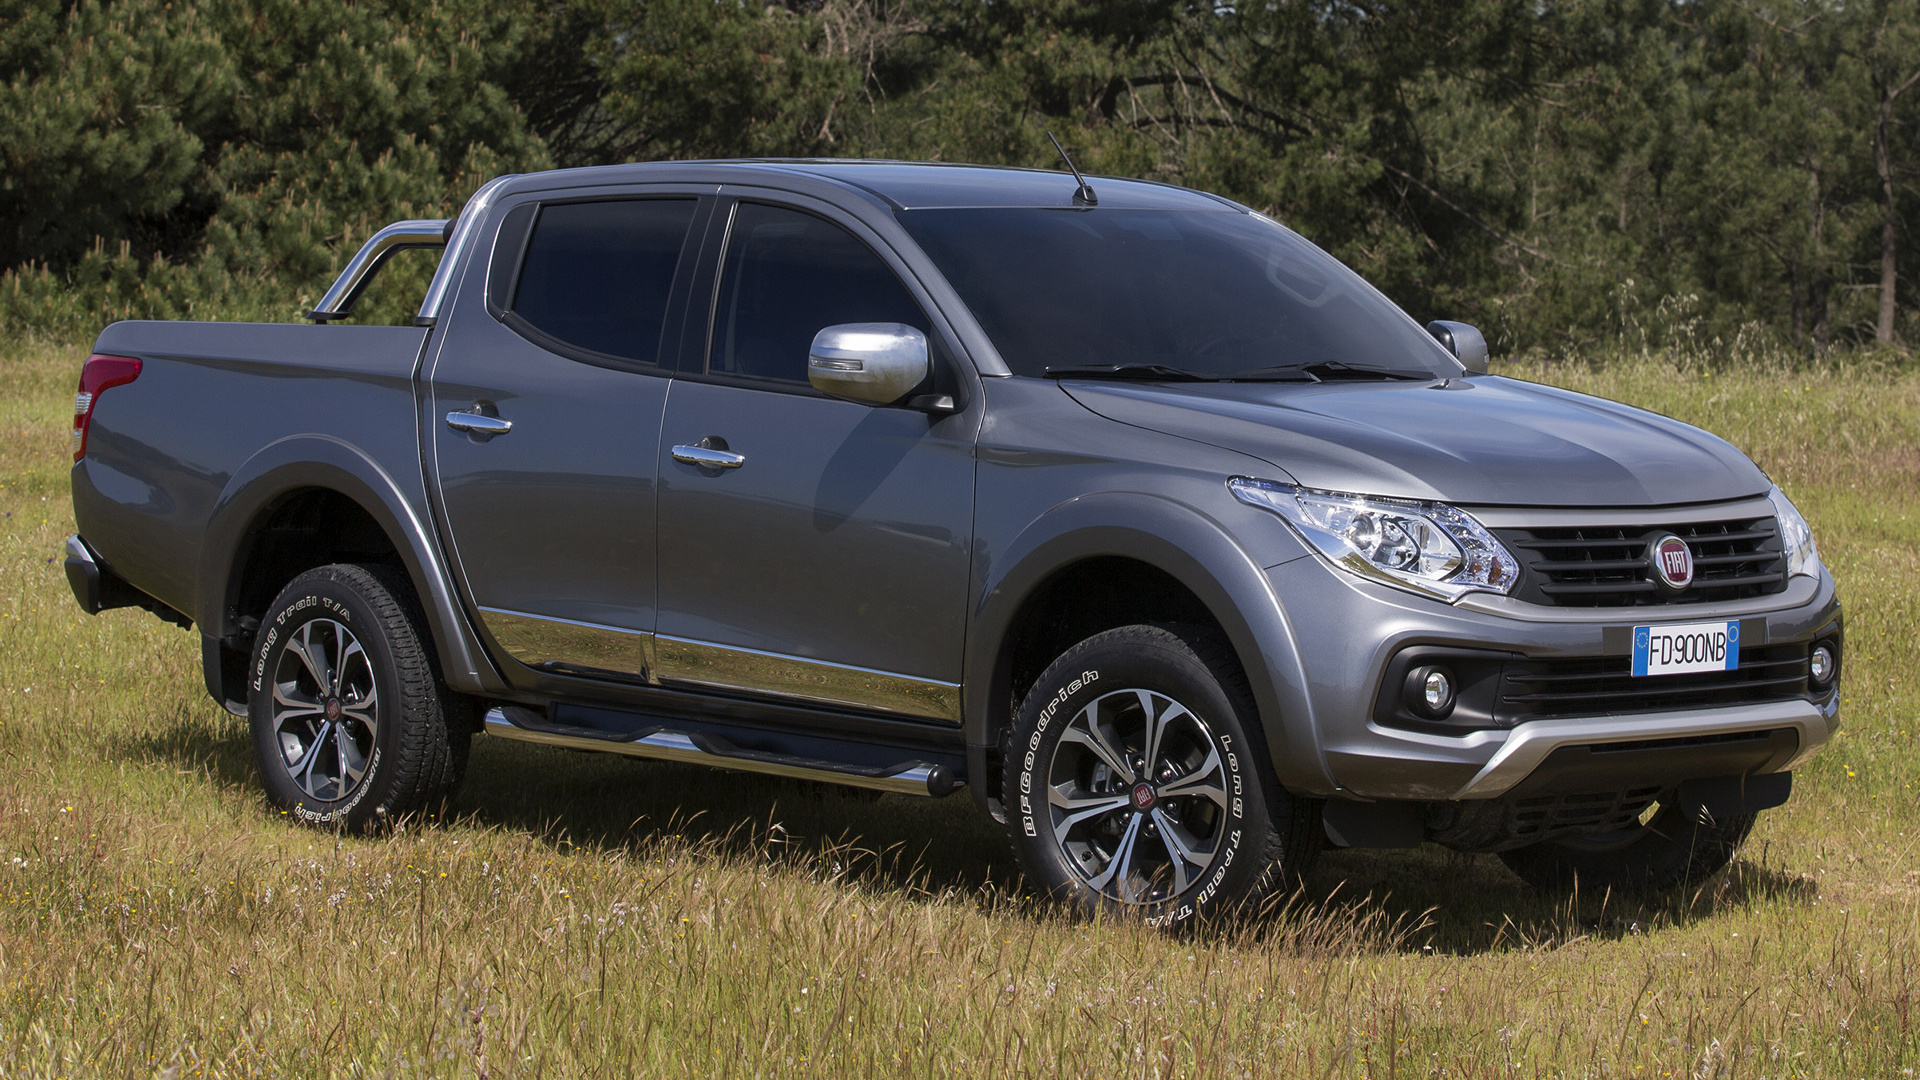 fiat fullback double cab 2016 wallpapers and hd images. Black Bedroom Furniture Sets. Home Design Ideas